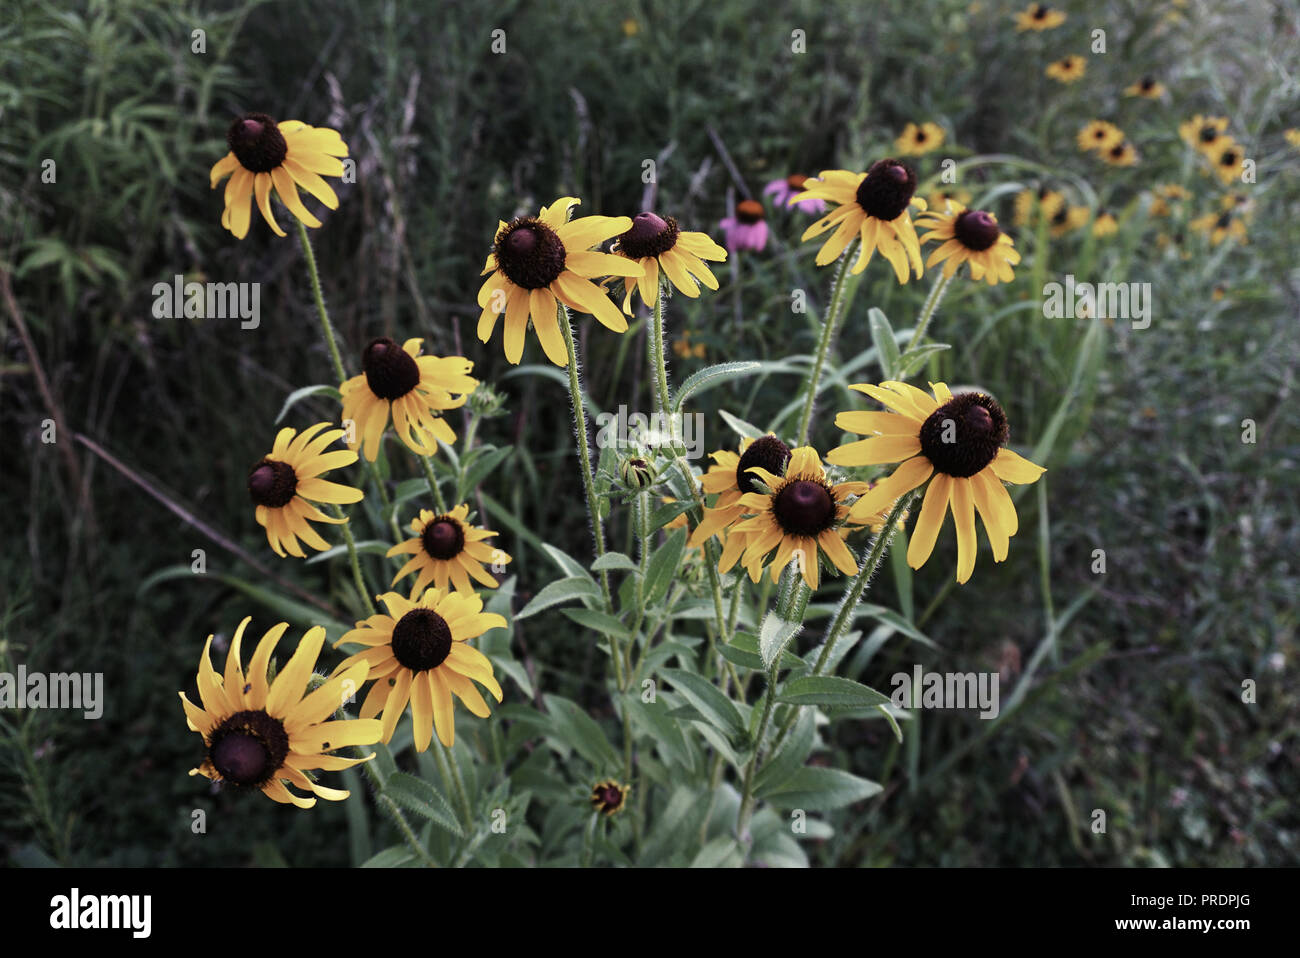 Camomiles in the Field on the Green Grass Background. Wild Flowers Daisy in Yellow muted tones. - Stock Image